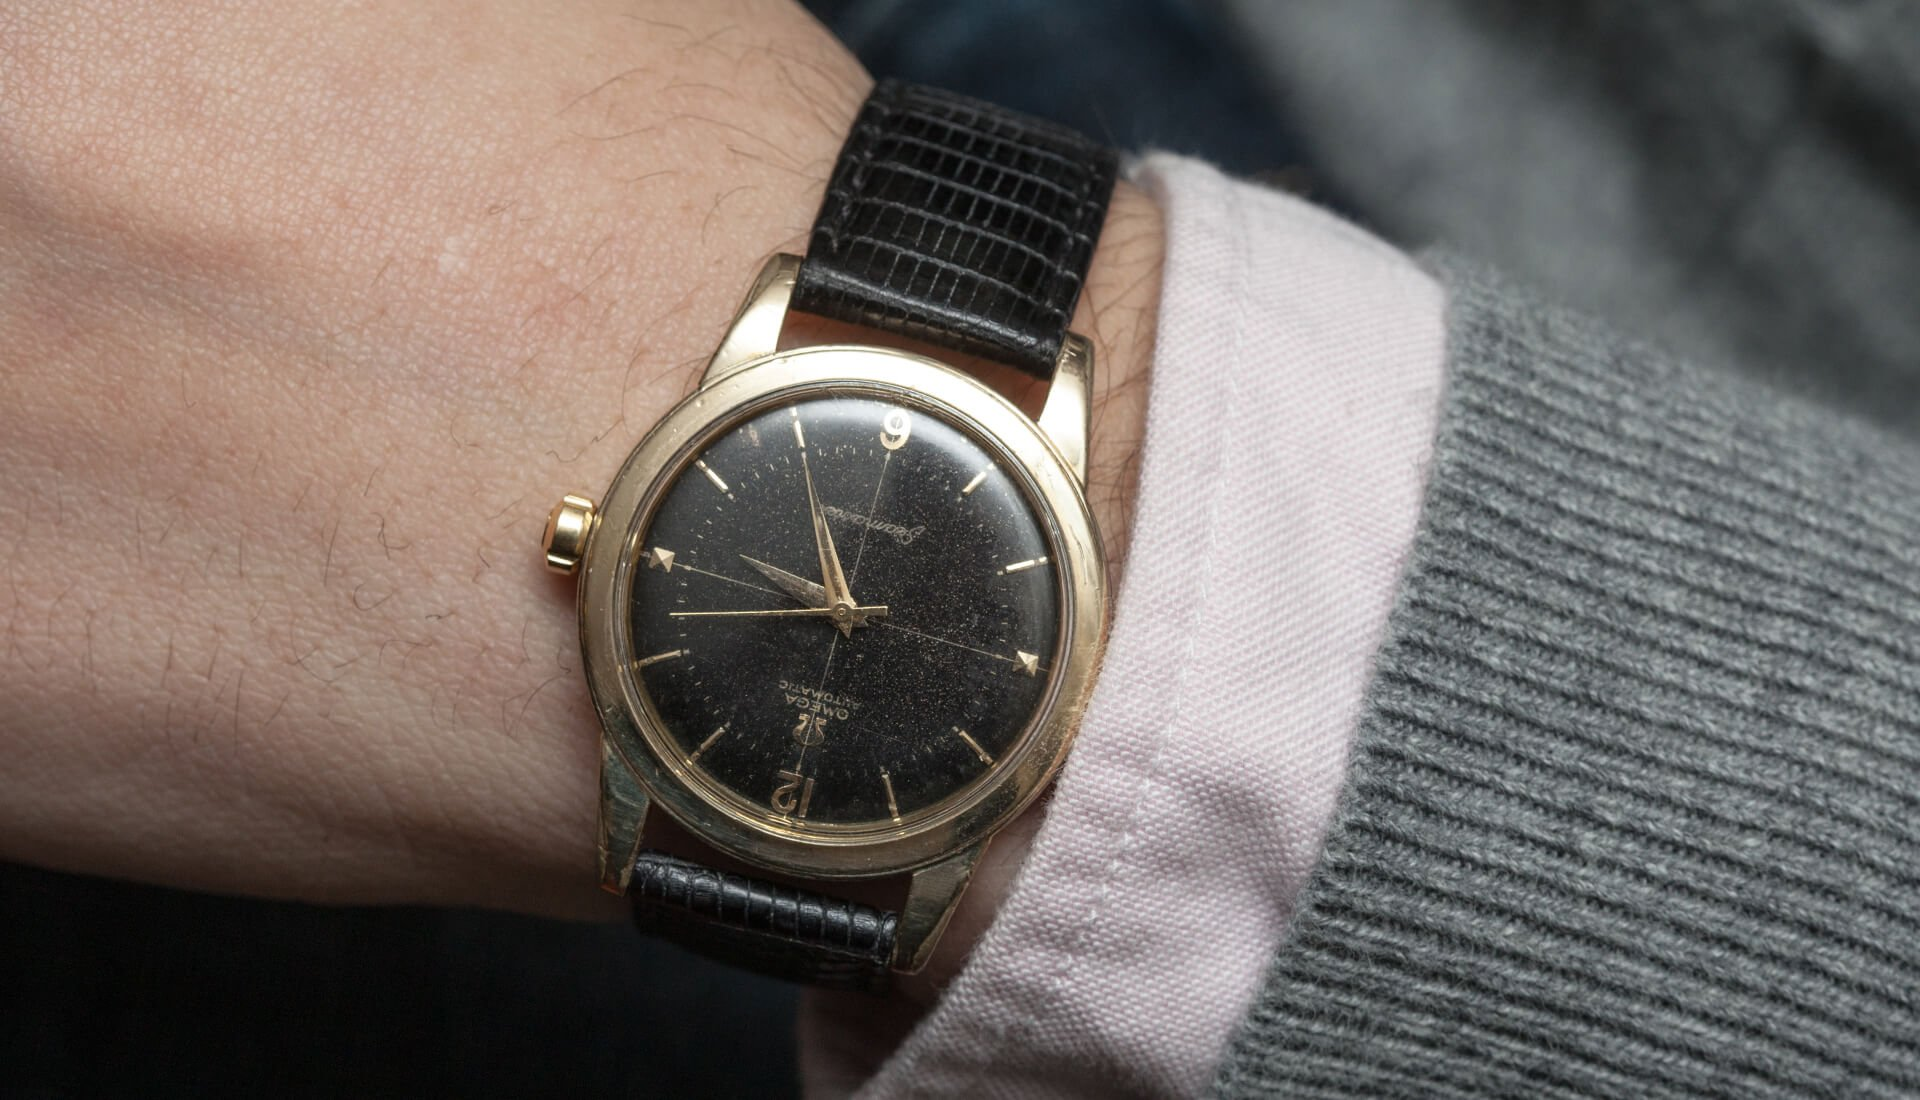 Lug2Lug: Omega Century + Seamaster, Black, Gold, And Rare